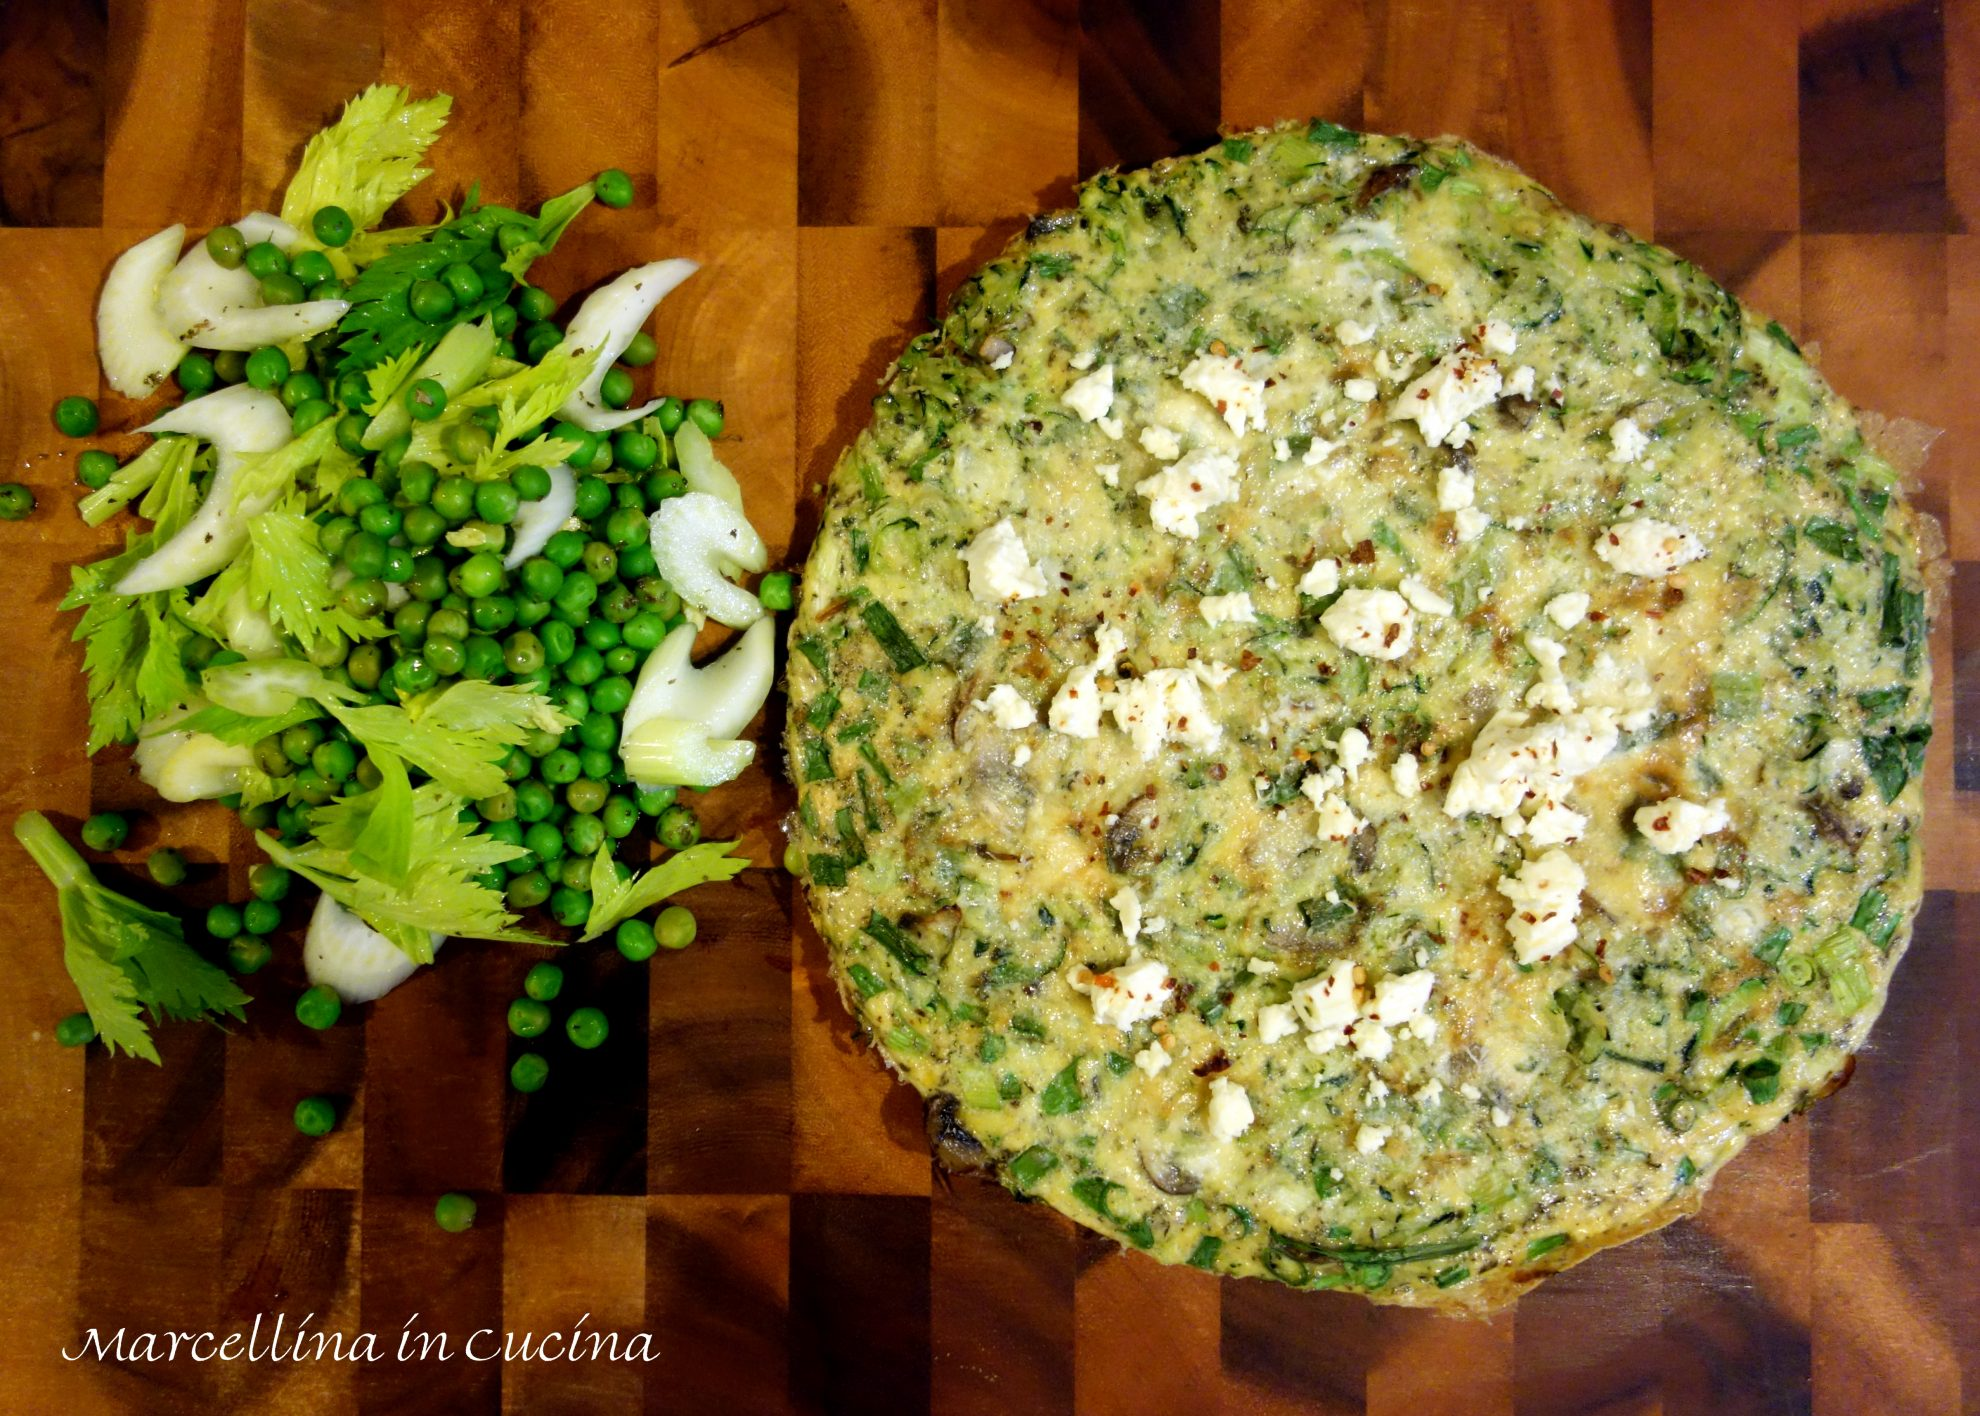 Zucchini Frittata with Pea and Celery Salad